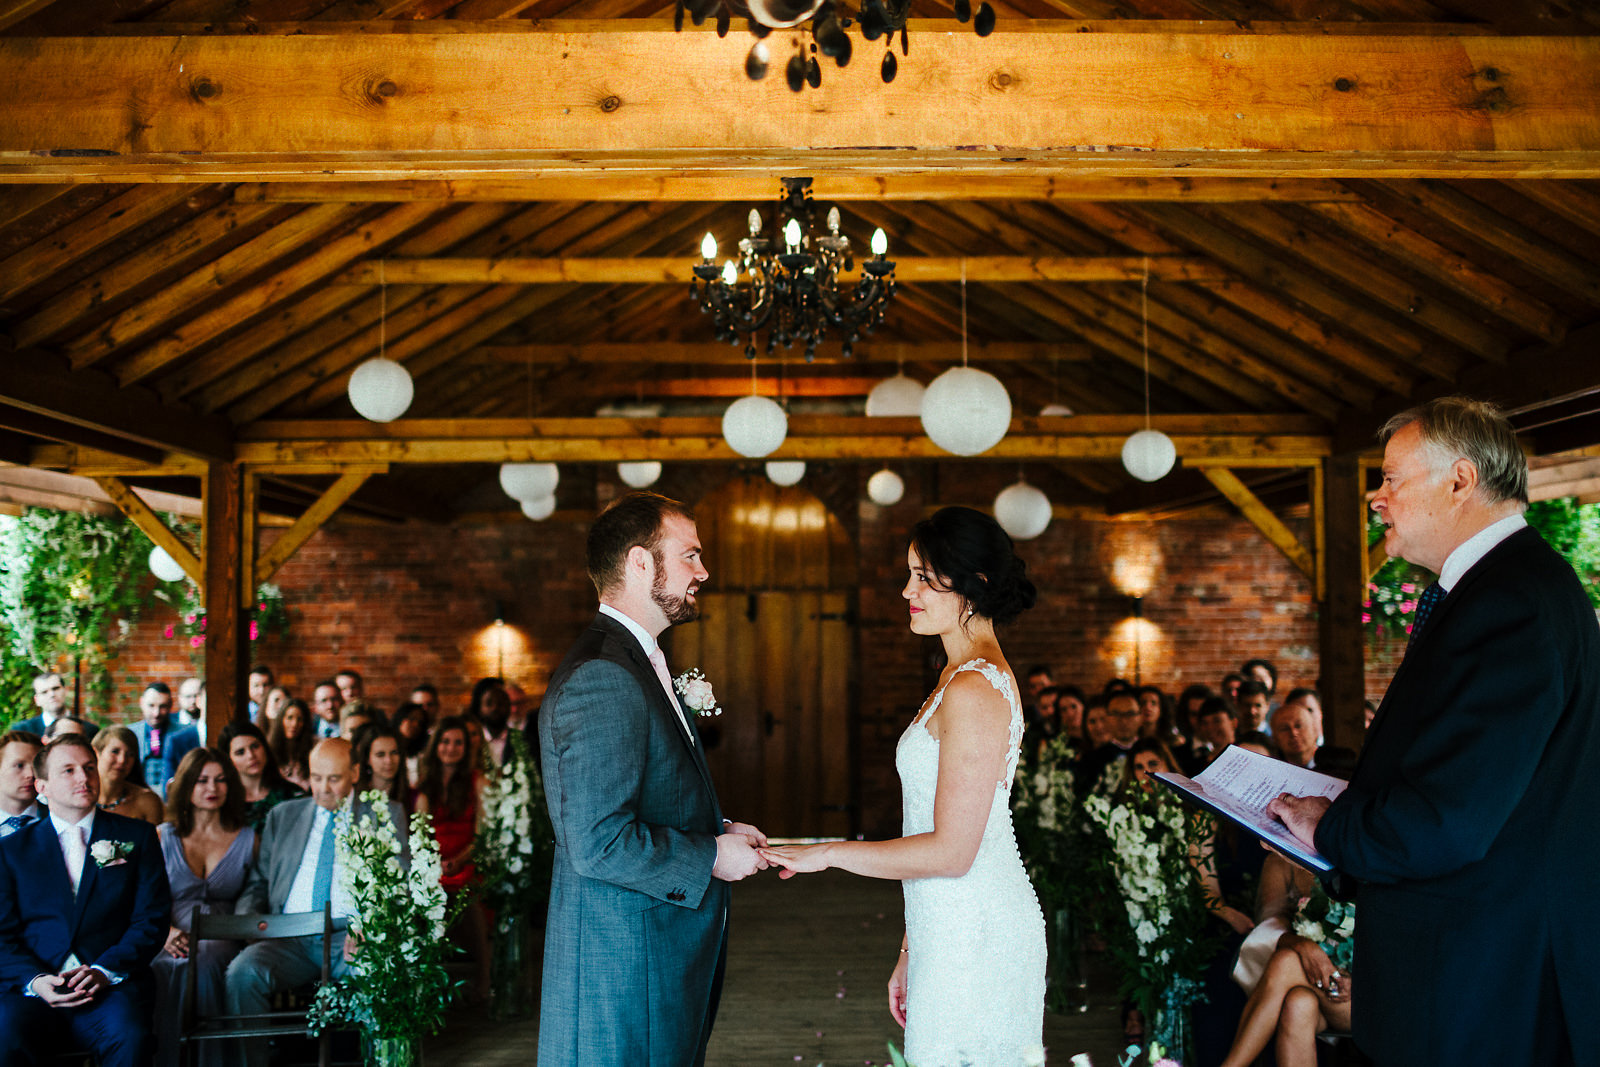 Wedding ceremony at Orchardleigh walled garden